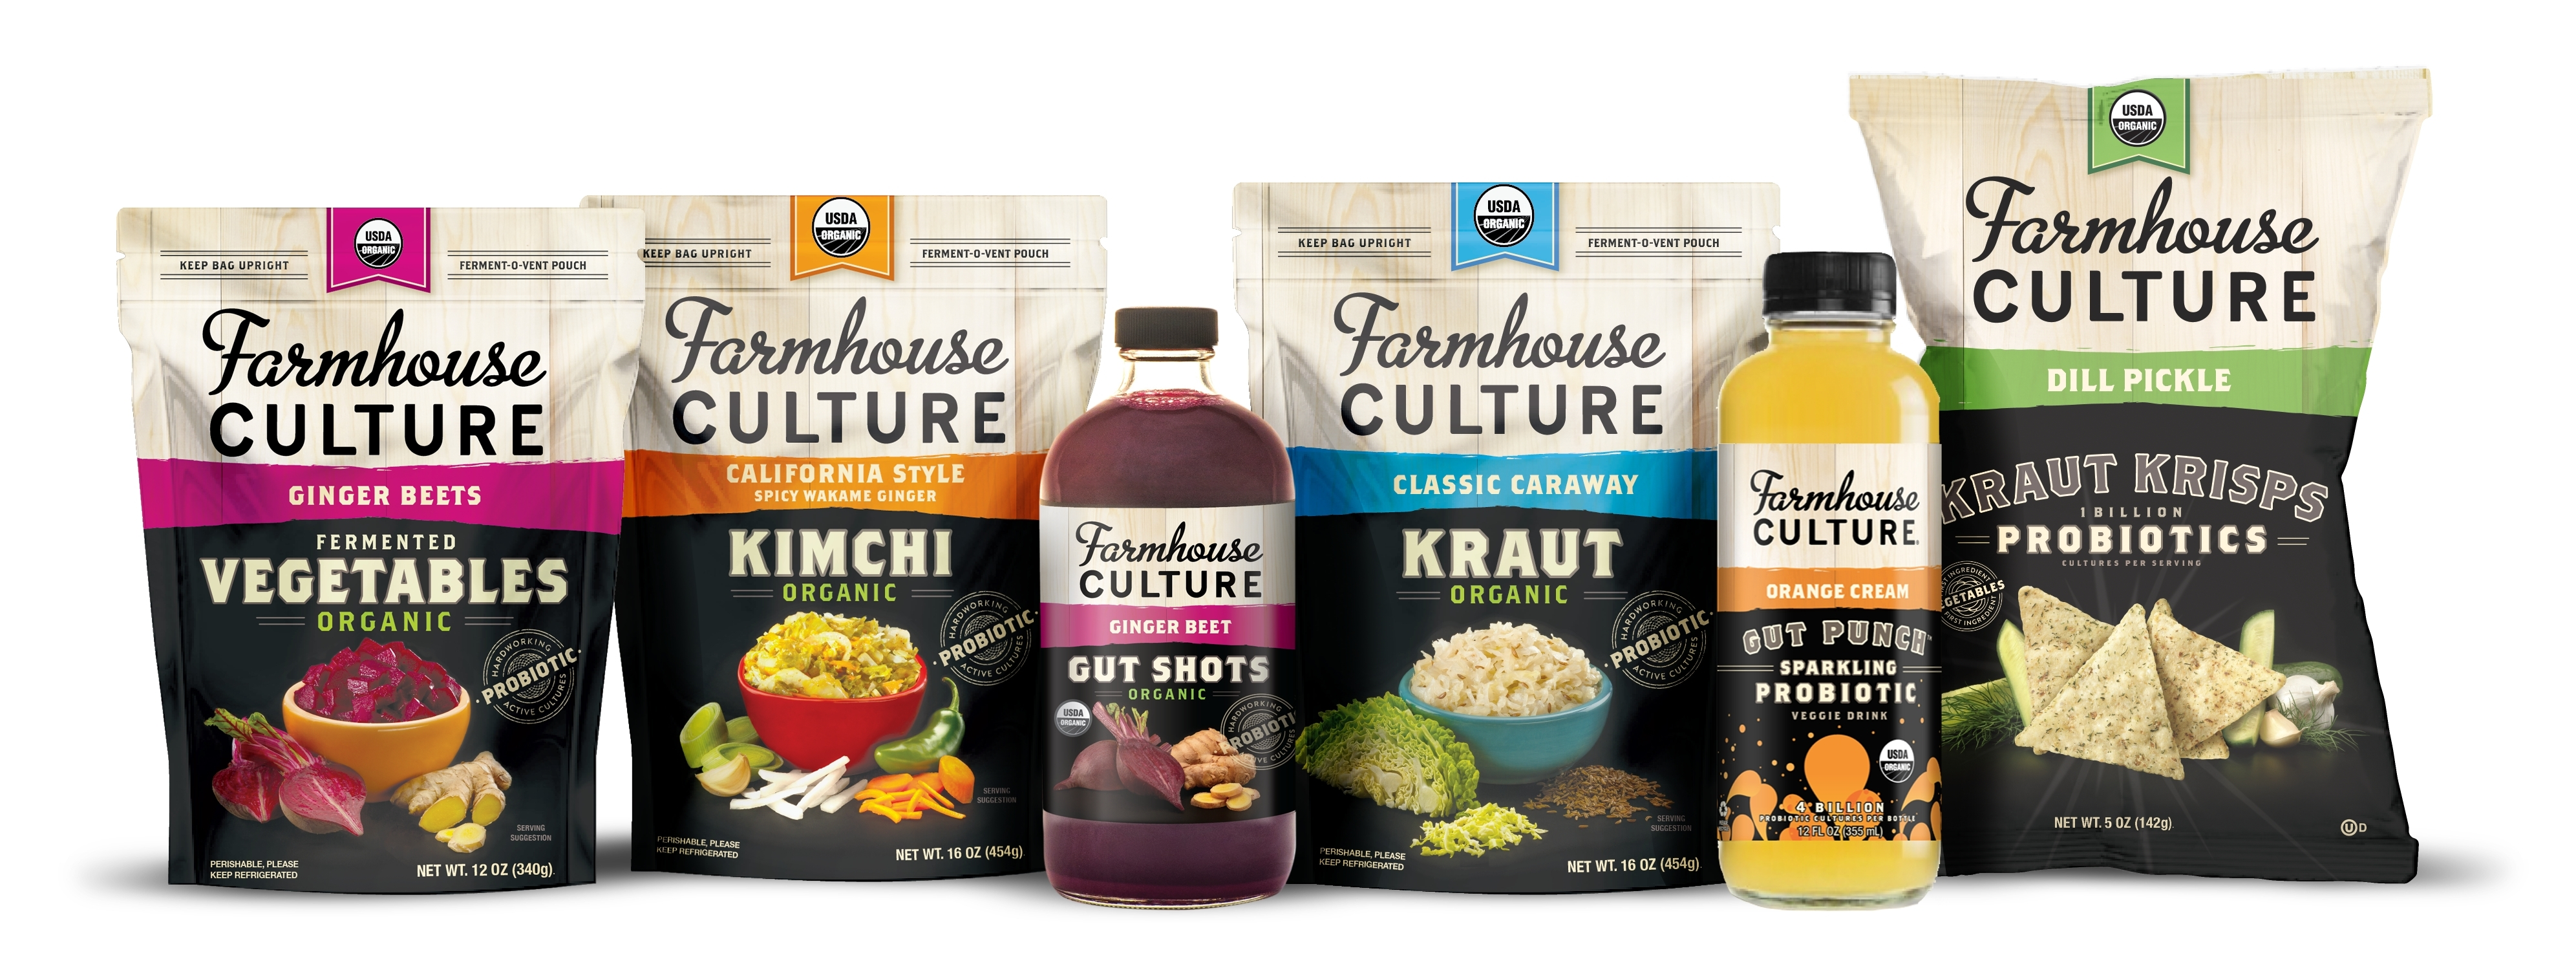 Farmhouse Culture Lands $6 5 Million Investment Led by 301 INC to Help Fuel